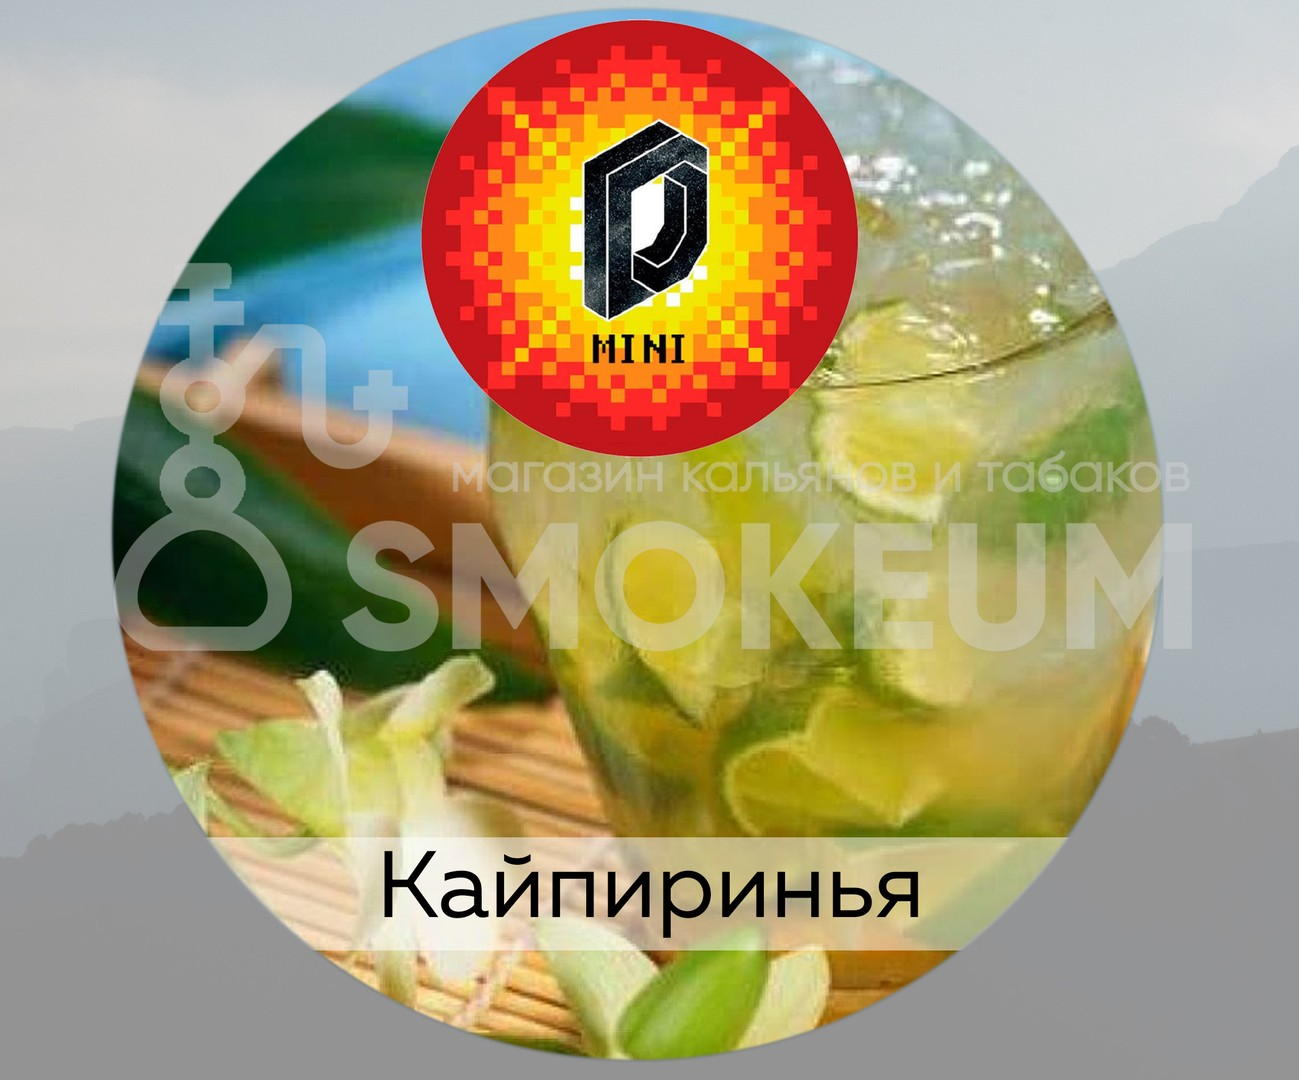 Табак D Tobacco Mini - Кайпиринья 15 гр